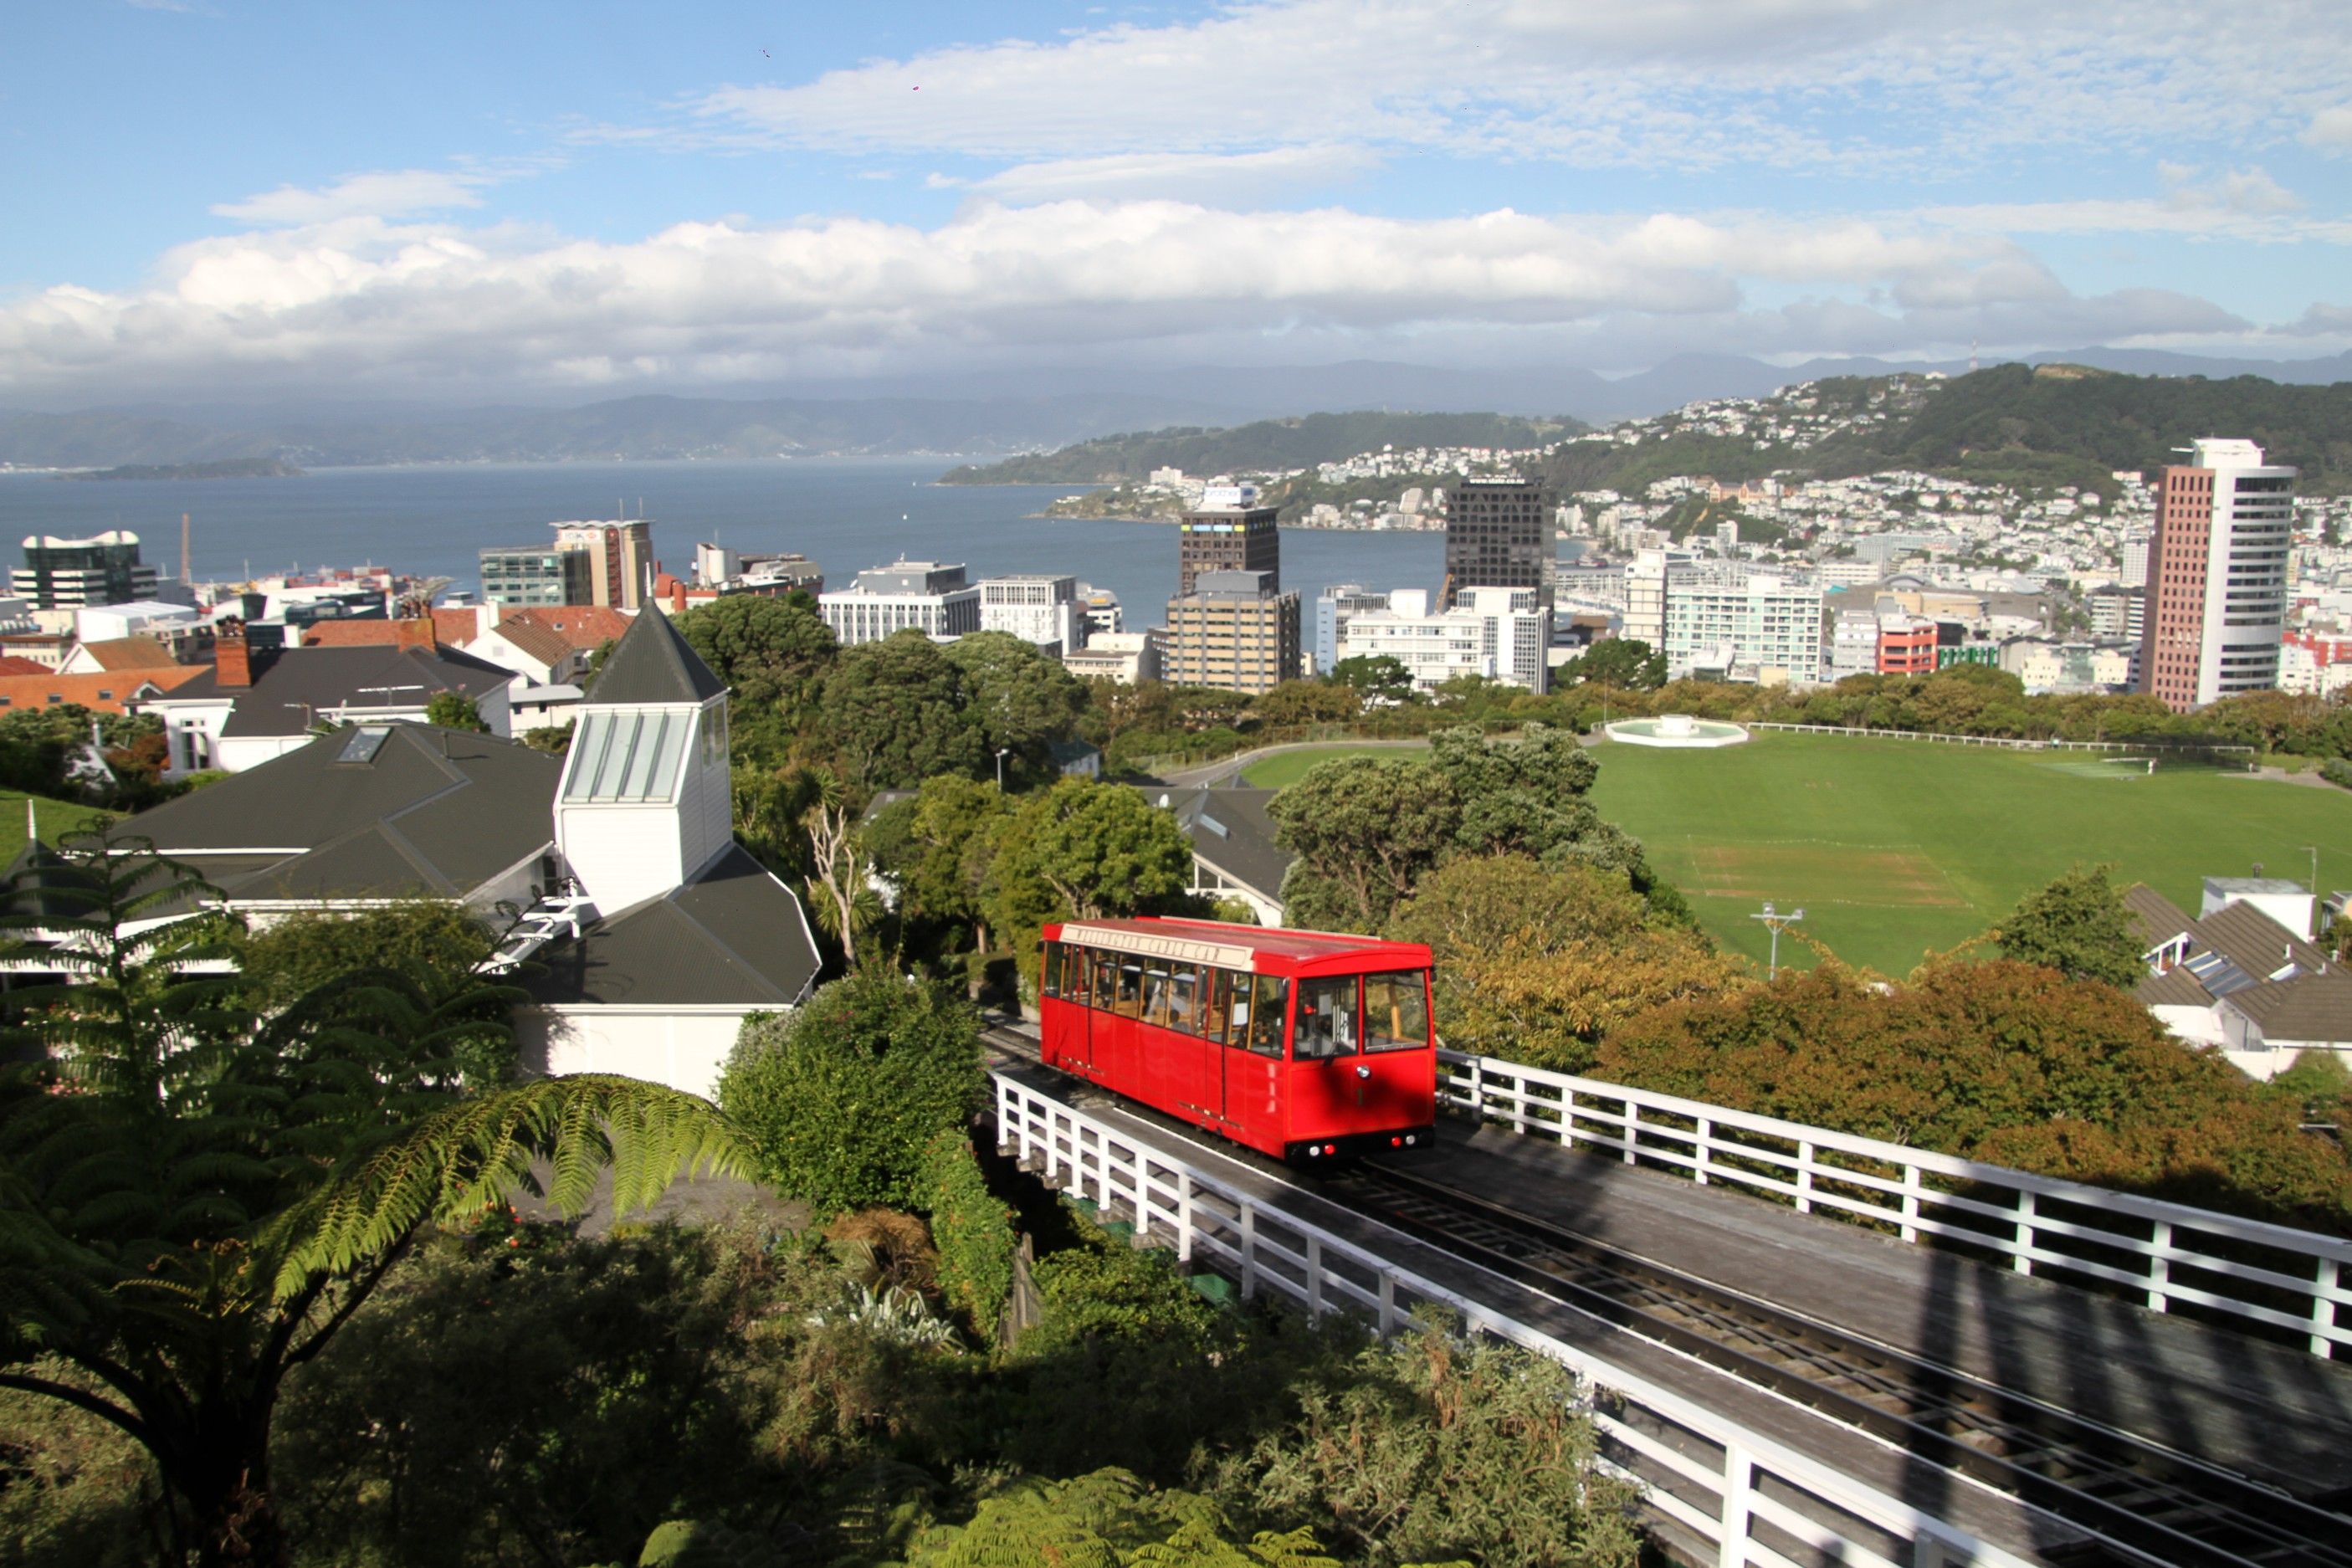 https://bubo.sk/uploads/galleries/5025/marekmeluch_novyzeland_wellington-cablecar.jpg